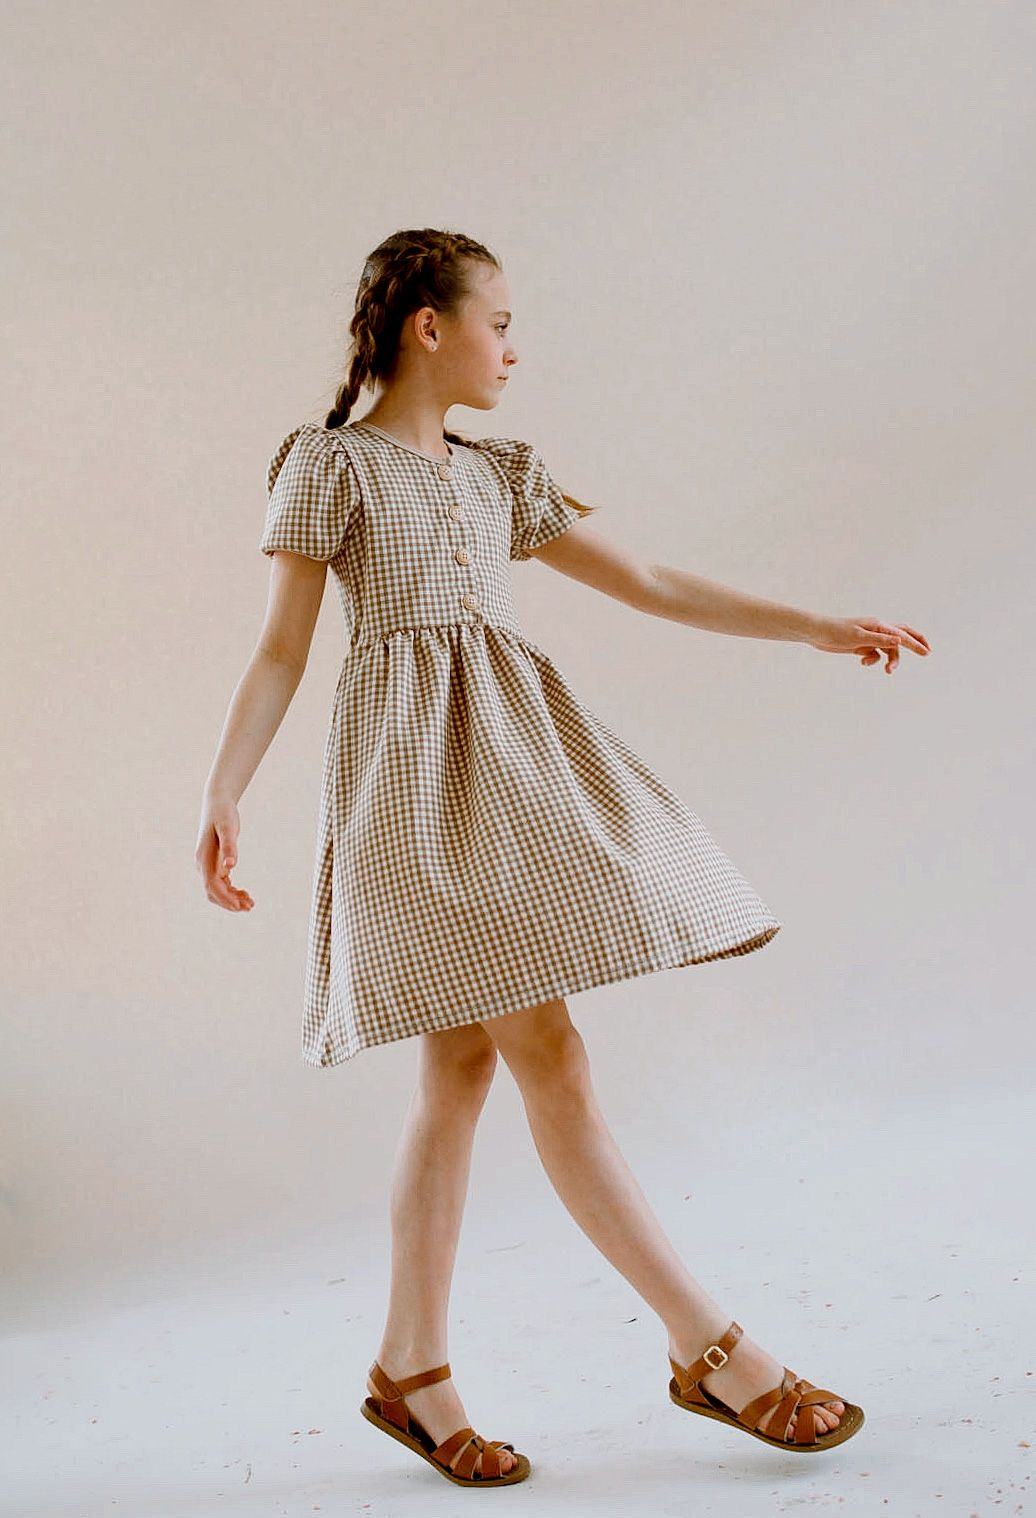 The Perfect Dress For School Church Summer And All The Other Things In Between Kids Fashion Inspiration Church Outfit For Teens Dresses For Teens [ 1518 x 1036 Pixel ]